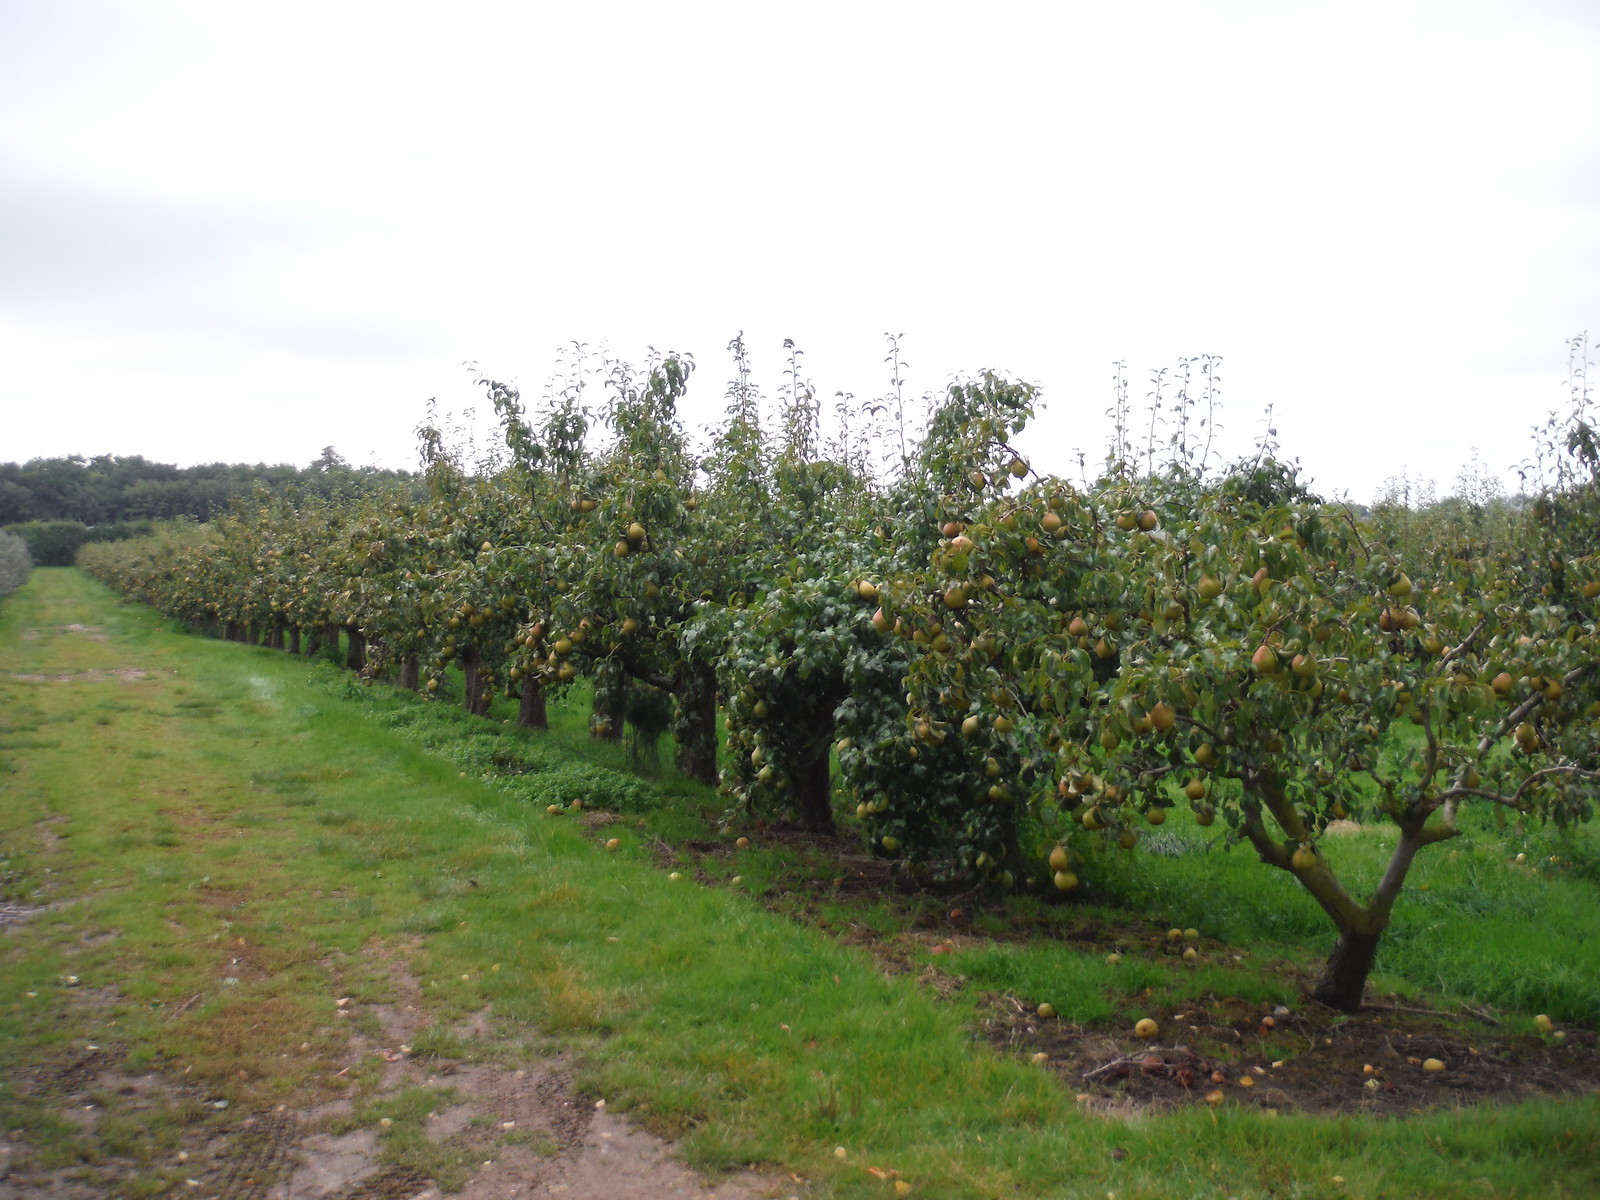 Pear Orchard, Bogle SWC Walk 299 - Teynham to Faversham